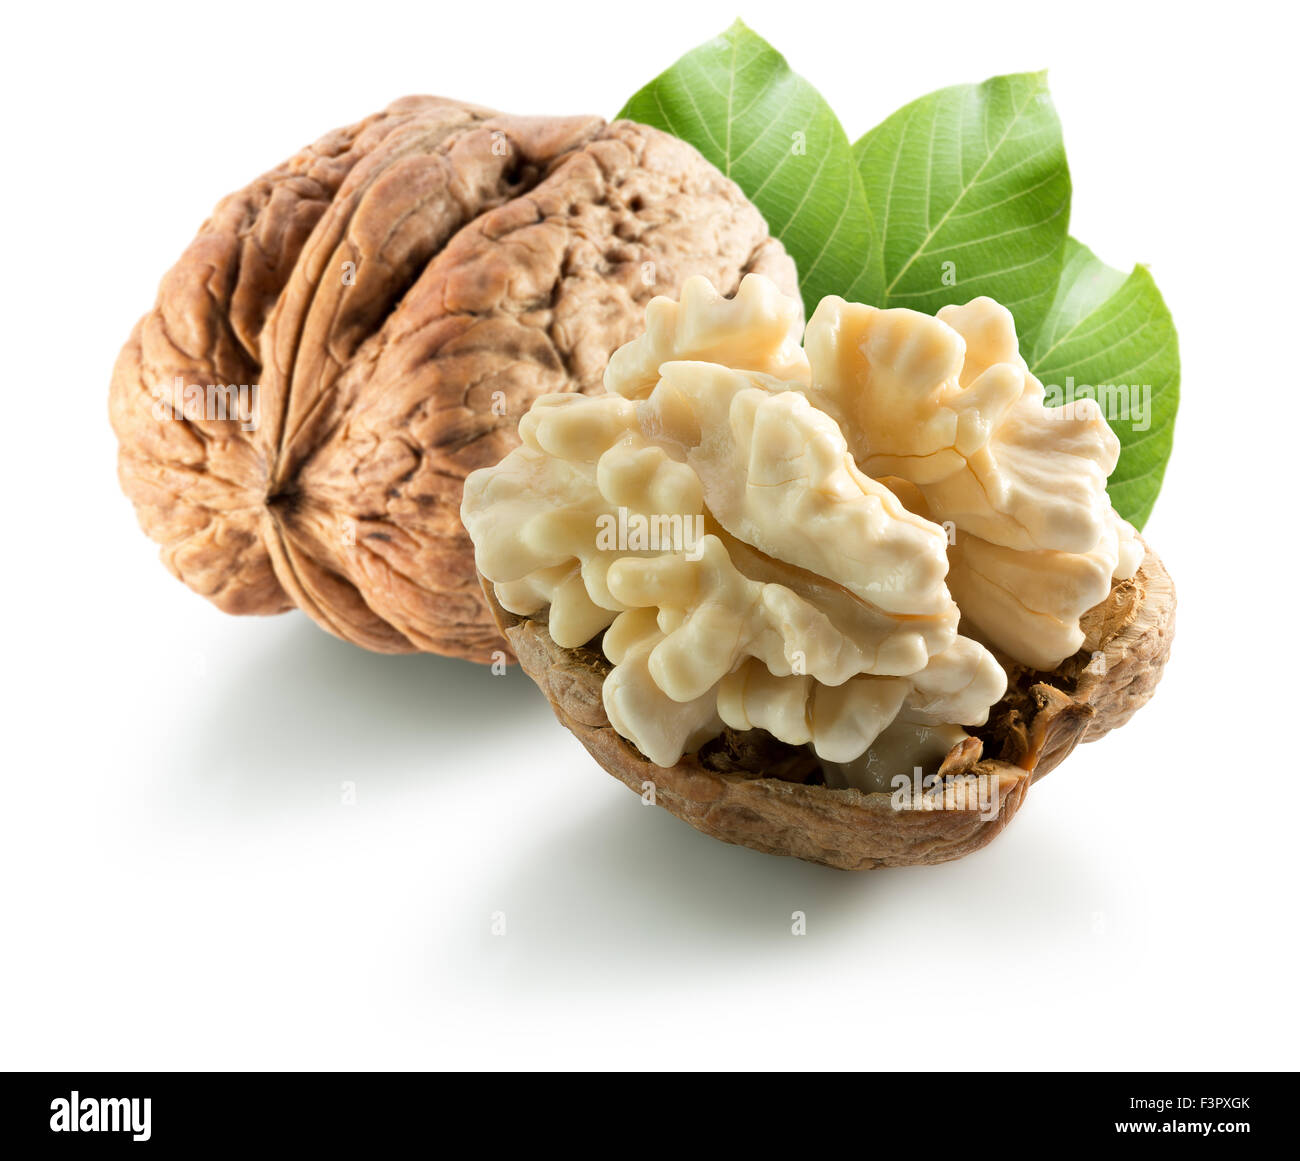 walnuts with leaves isolated on the white background. - Stock Image